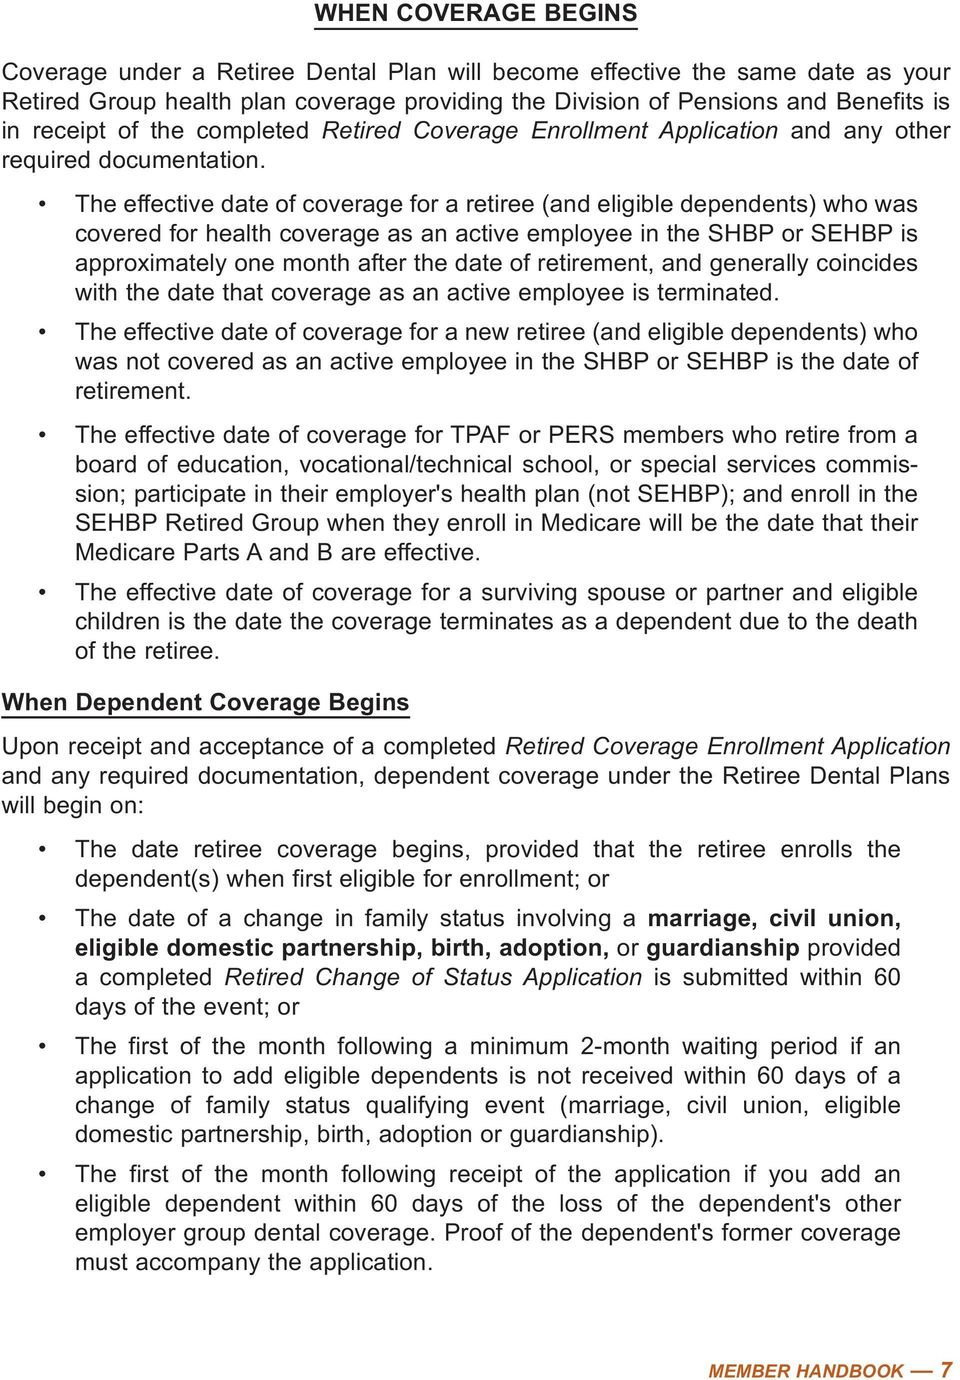 The effective date of coverage for a retiree (and eligible dependents) who was covered for health coverage as an active employee in the SHBP or SEHBP is approximately one month after the date of